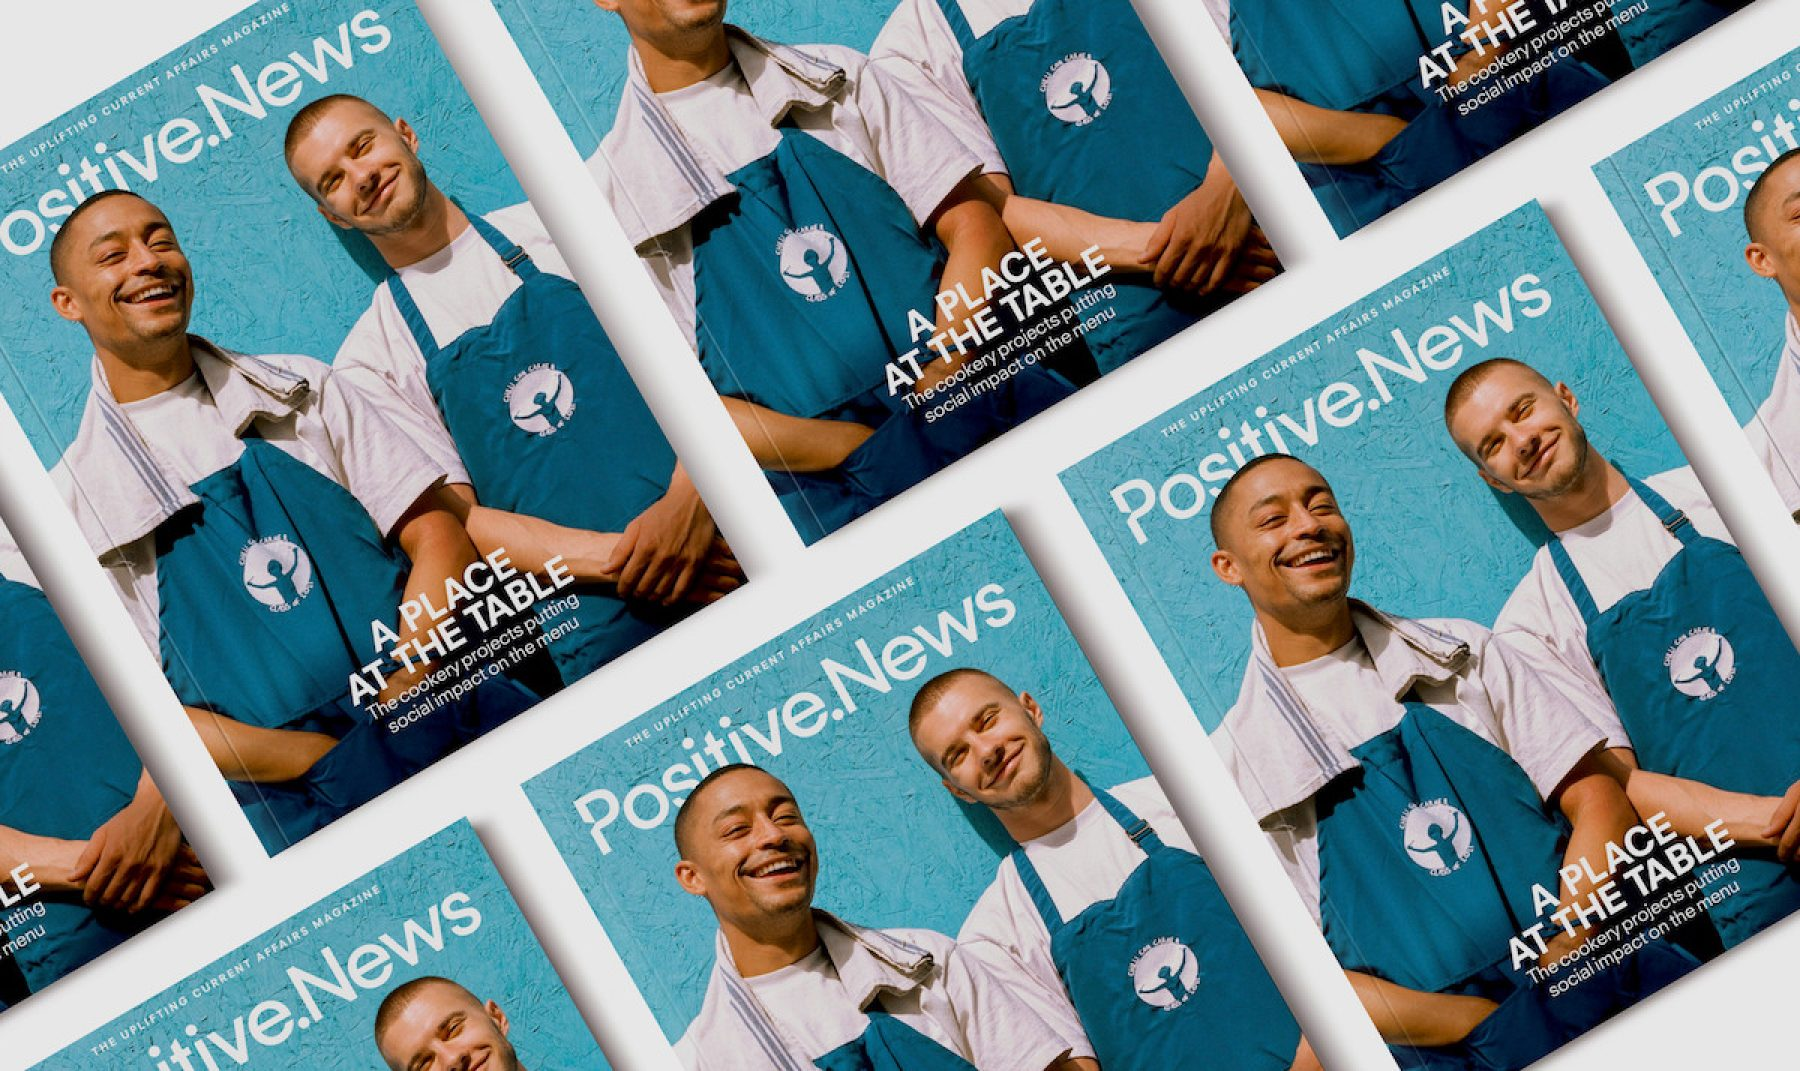 Image for Appetite for change: new issue of Positive News leads on cookery projects having a positive social impact